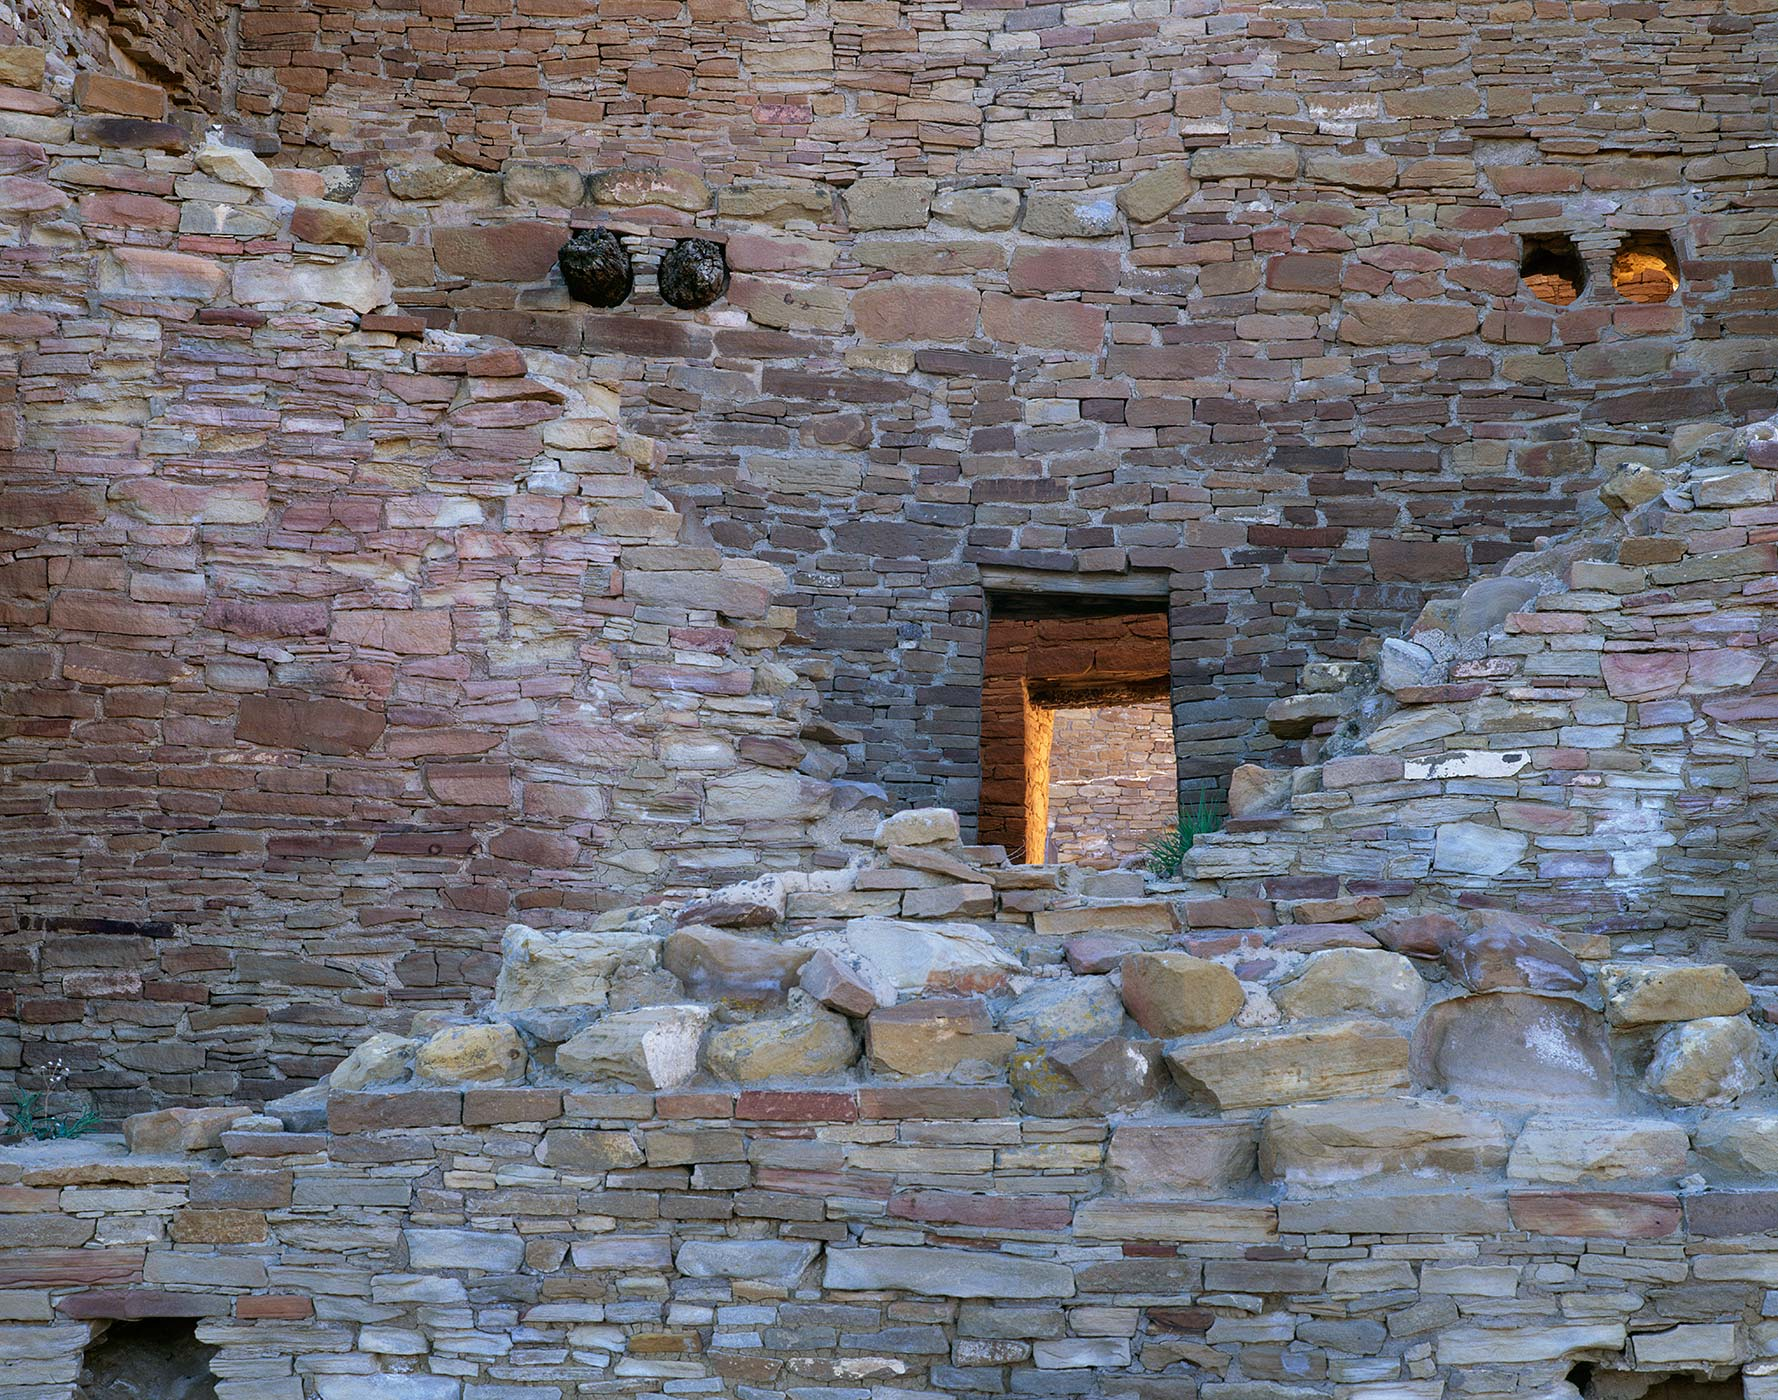 508 Crumbled Walls, Chaco Culture National Park, New Mexico